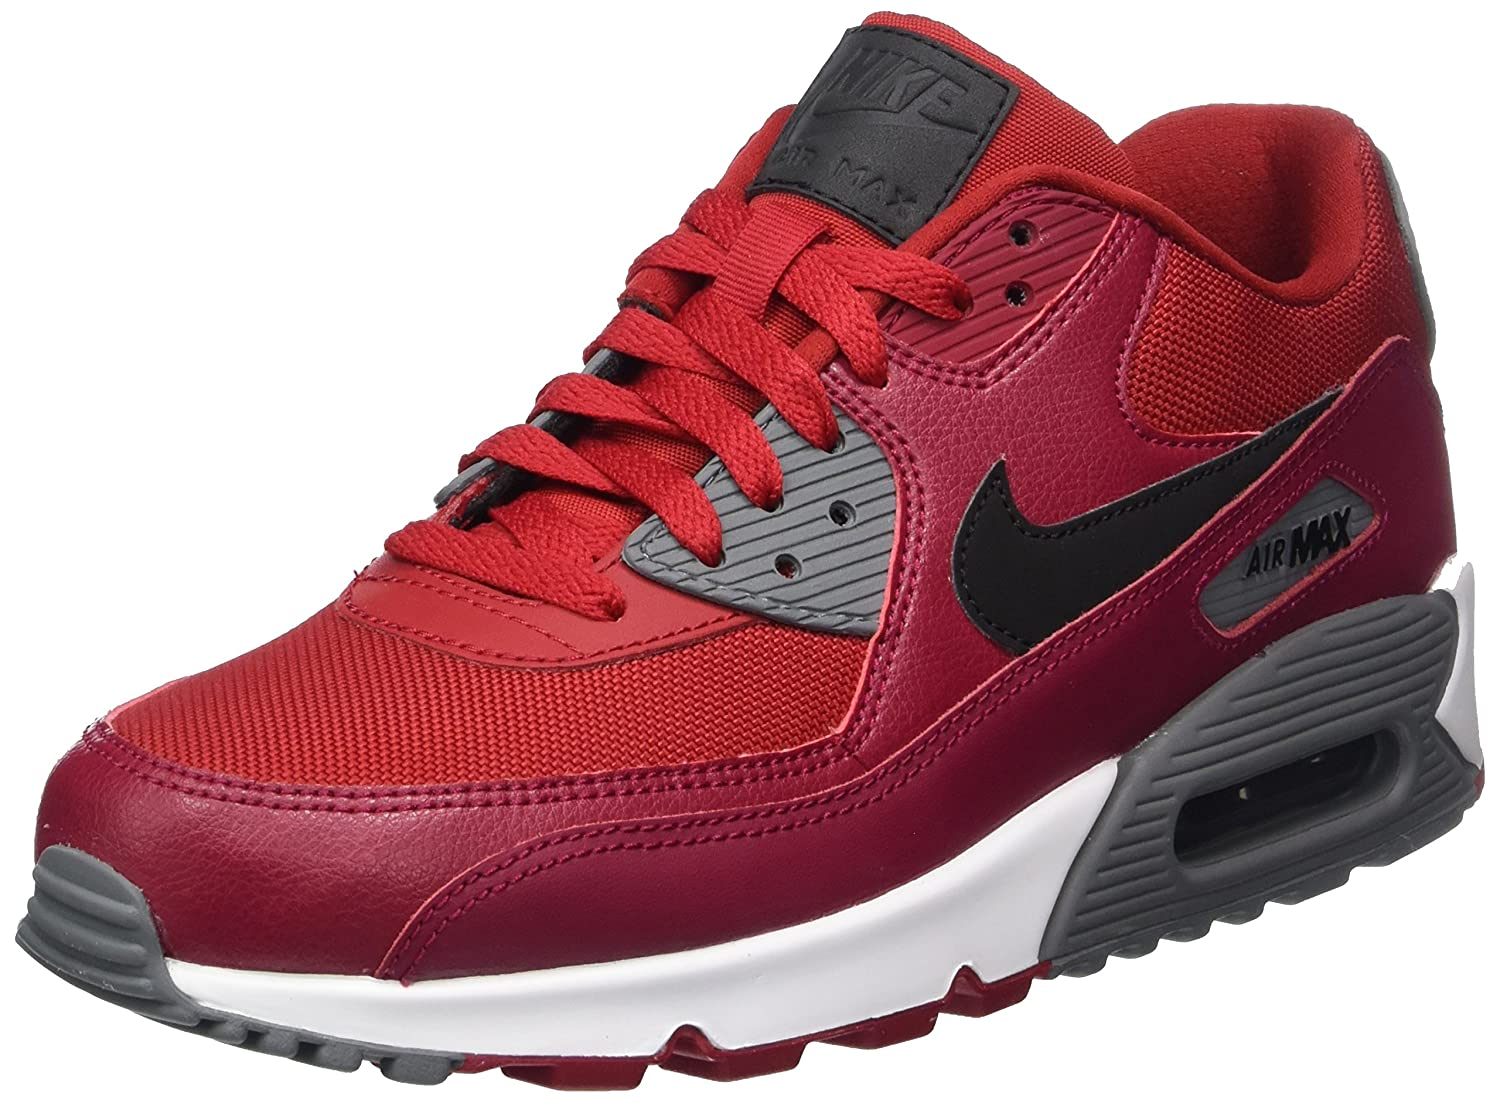 NIKE Men's Air Max 90 Essential Running Shoe B075Z57B3B 8 D(M) US|Gym Red/Black/Noble Red